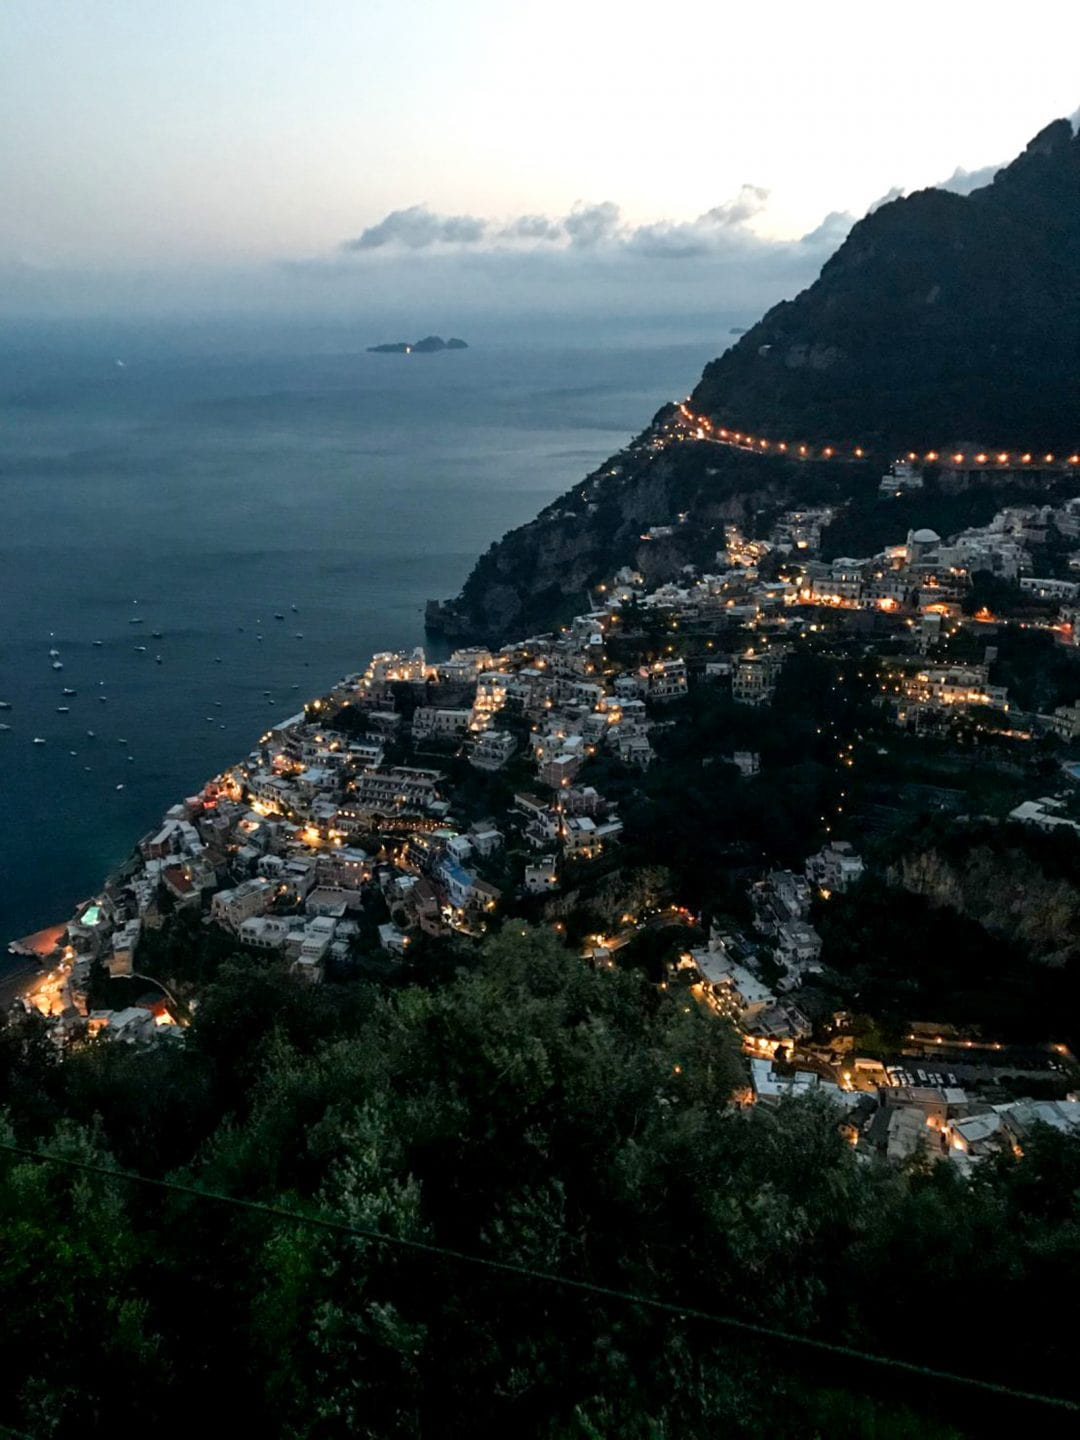 Positano viewed from above - a night scene.